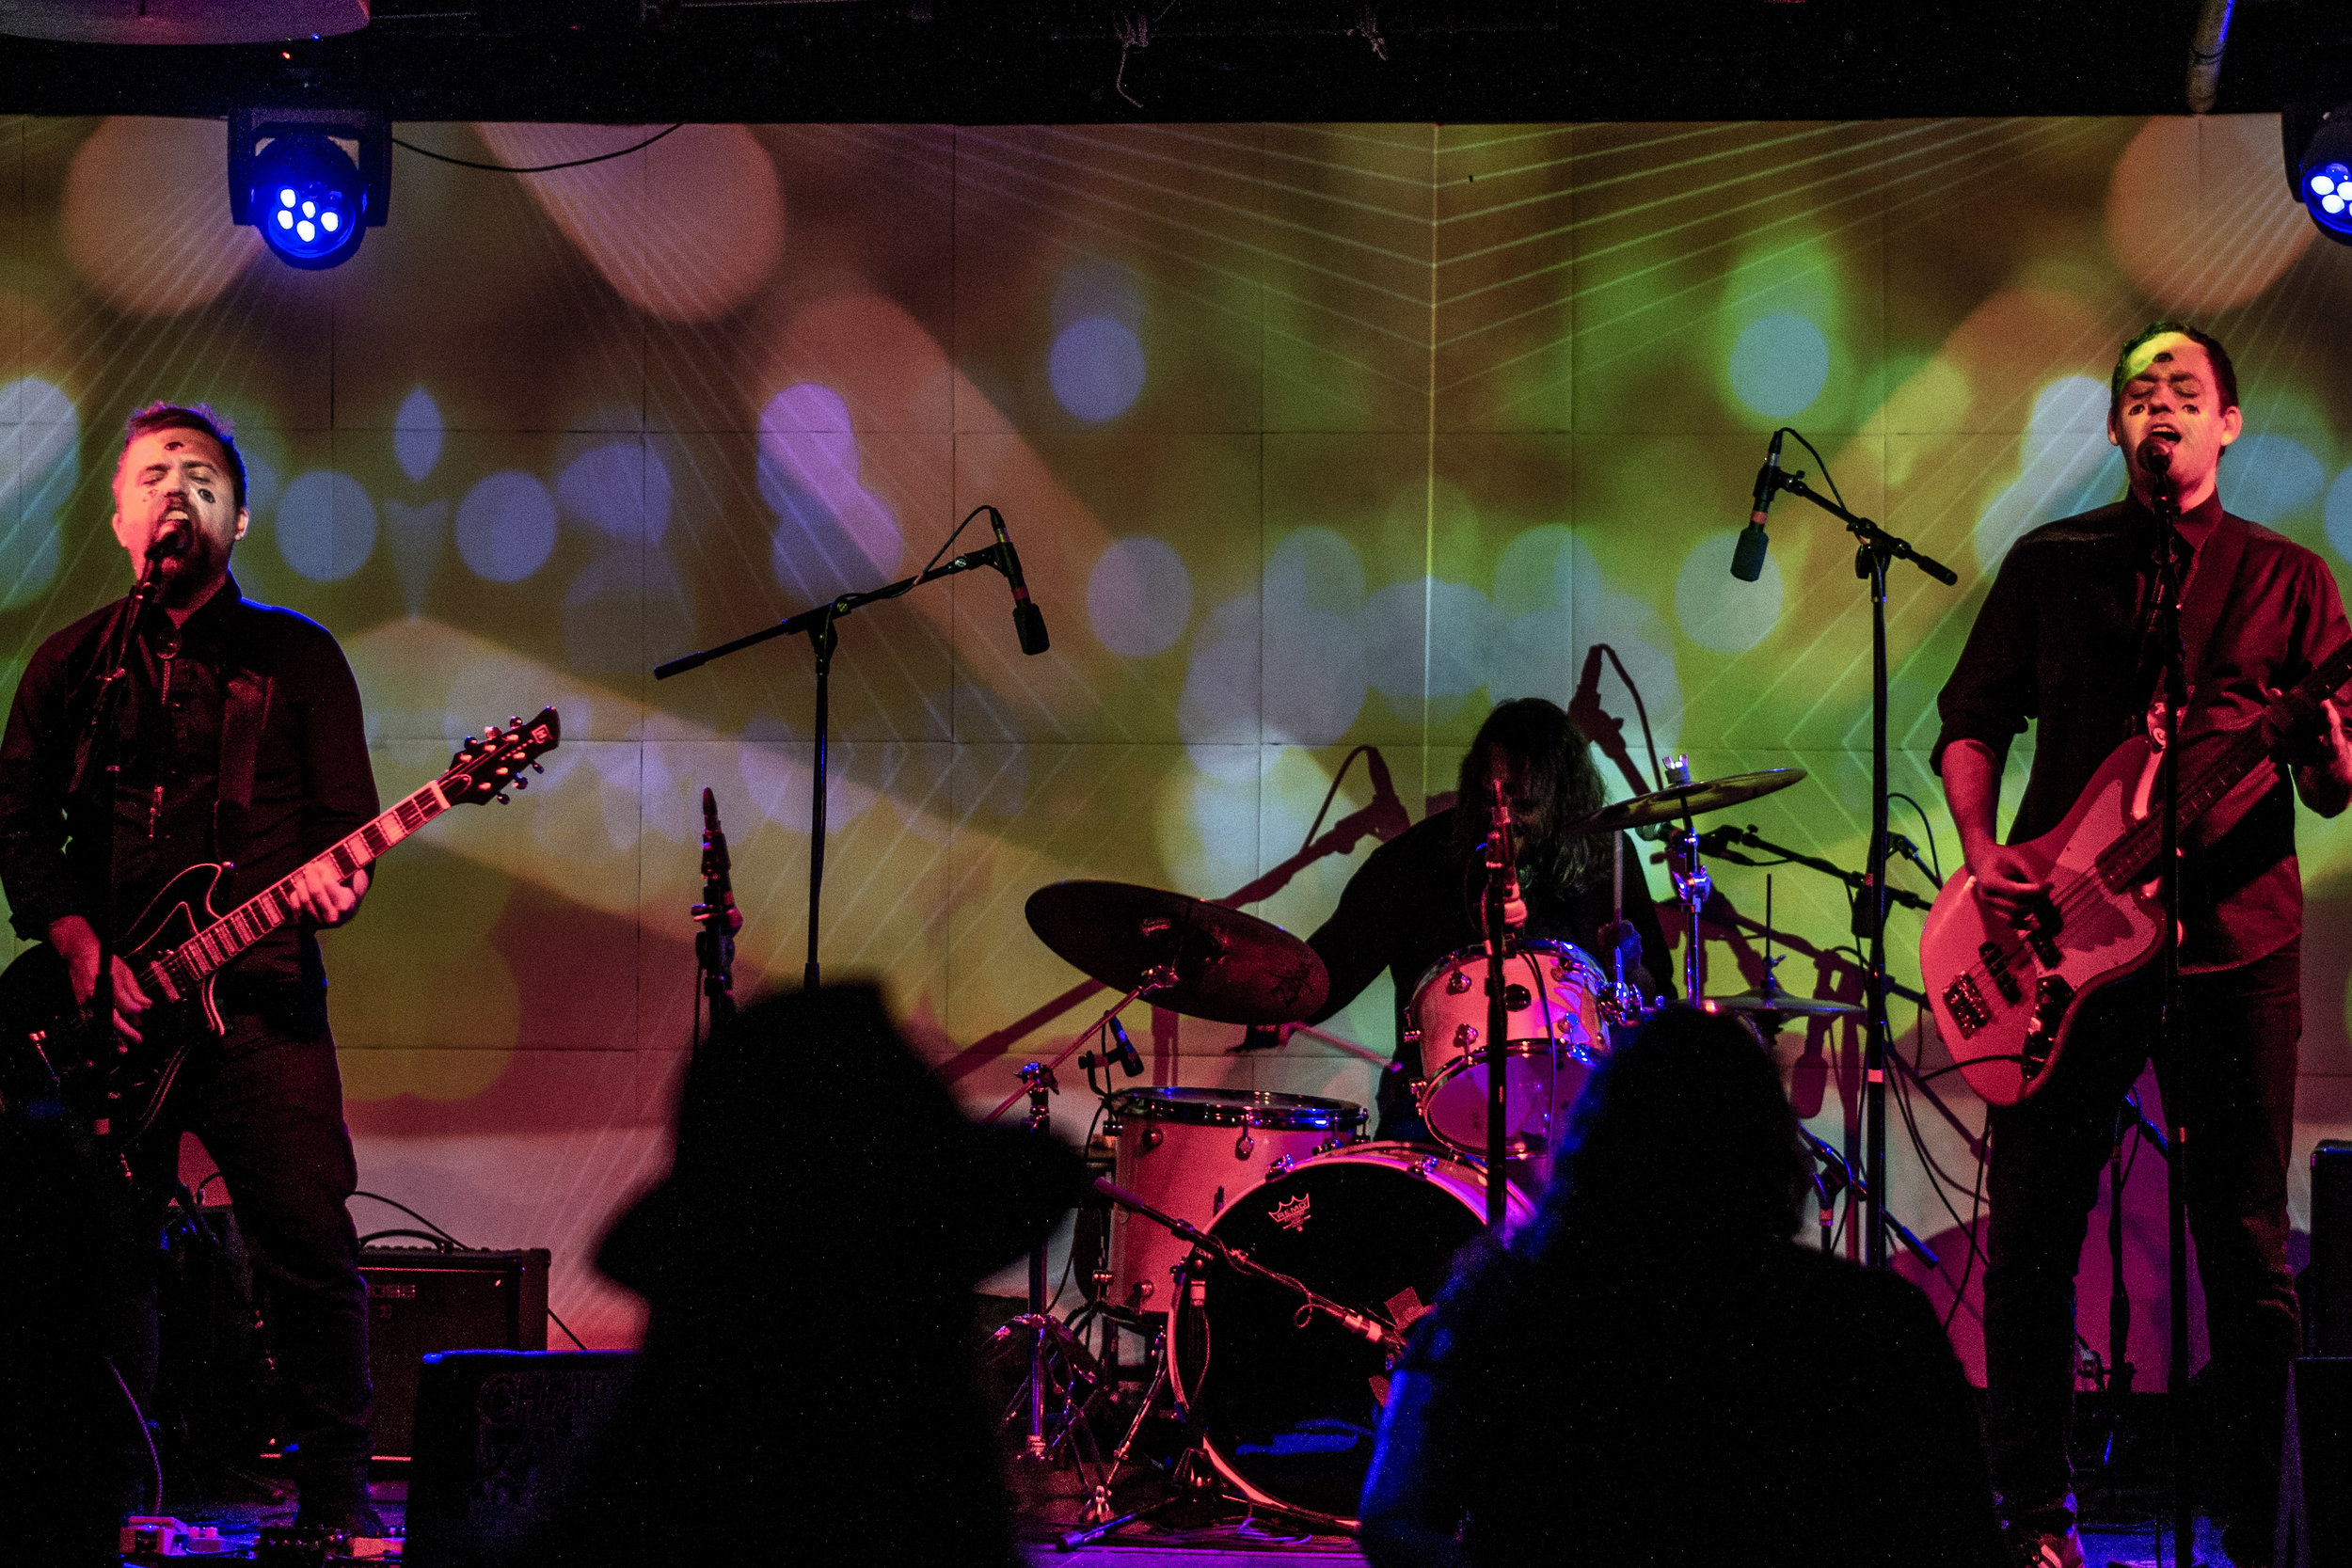 Photo by Helaine Bach, Empire Control Room, ATX, Hot Summer Nights, July 2019